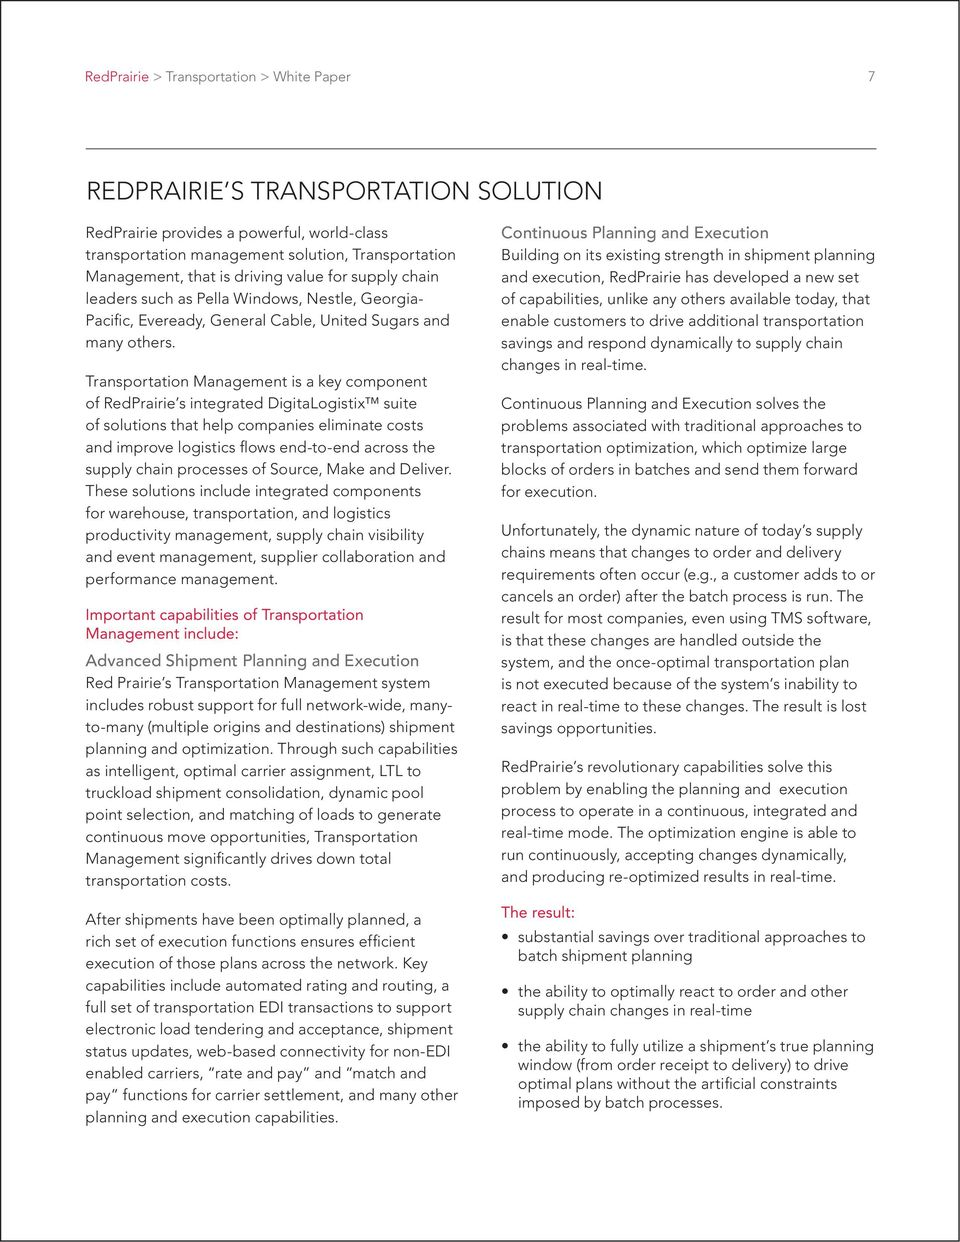 Transportation Management is a key component of RedPrairie s integrated DigitaLogistix suite of solutions that help companies eliminate costs and improve logistics flows end-to-end across the supply